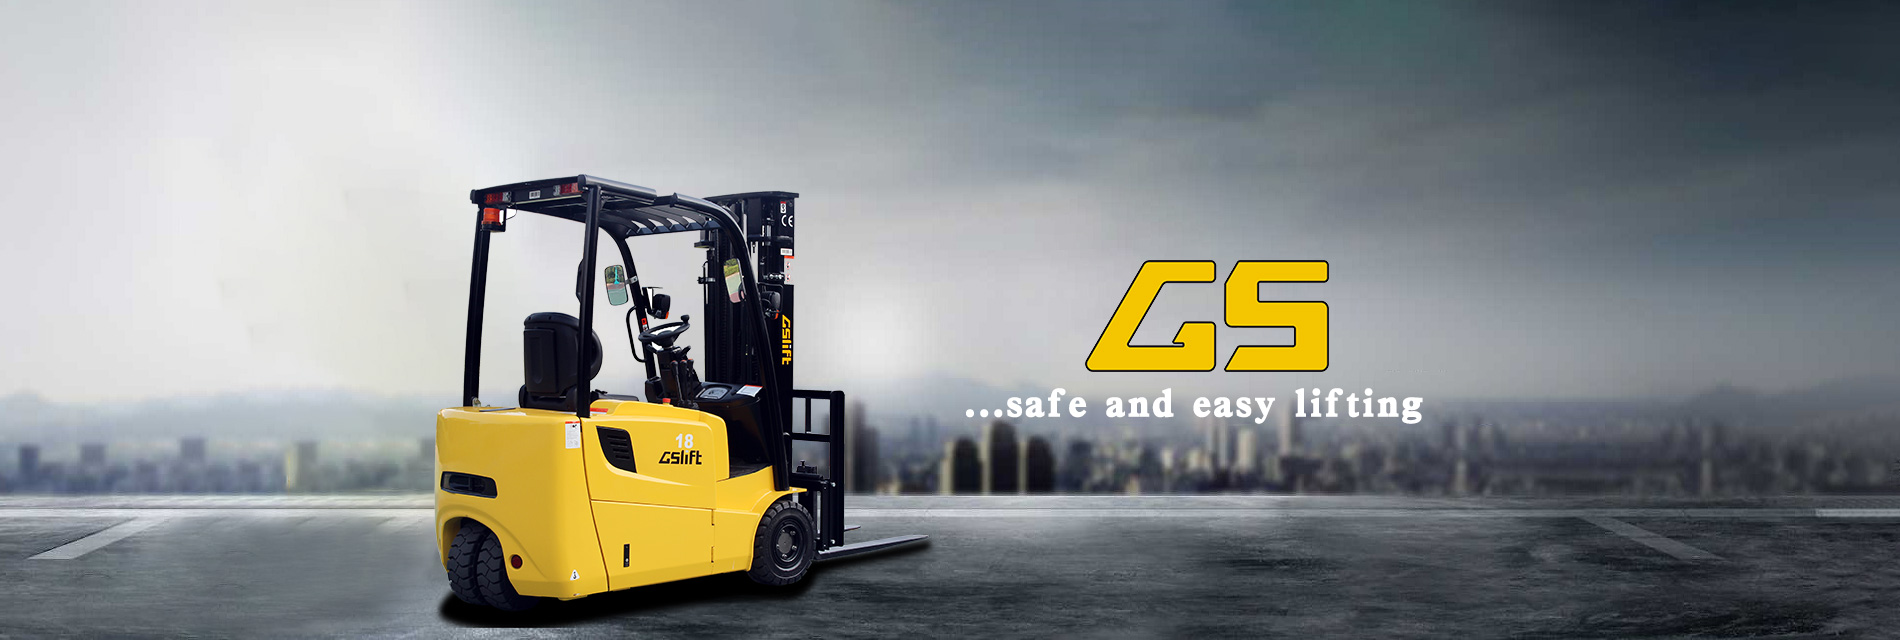 safe and easy lifting-www.gs-forklift.com